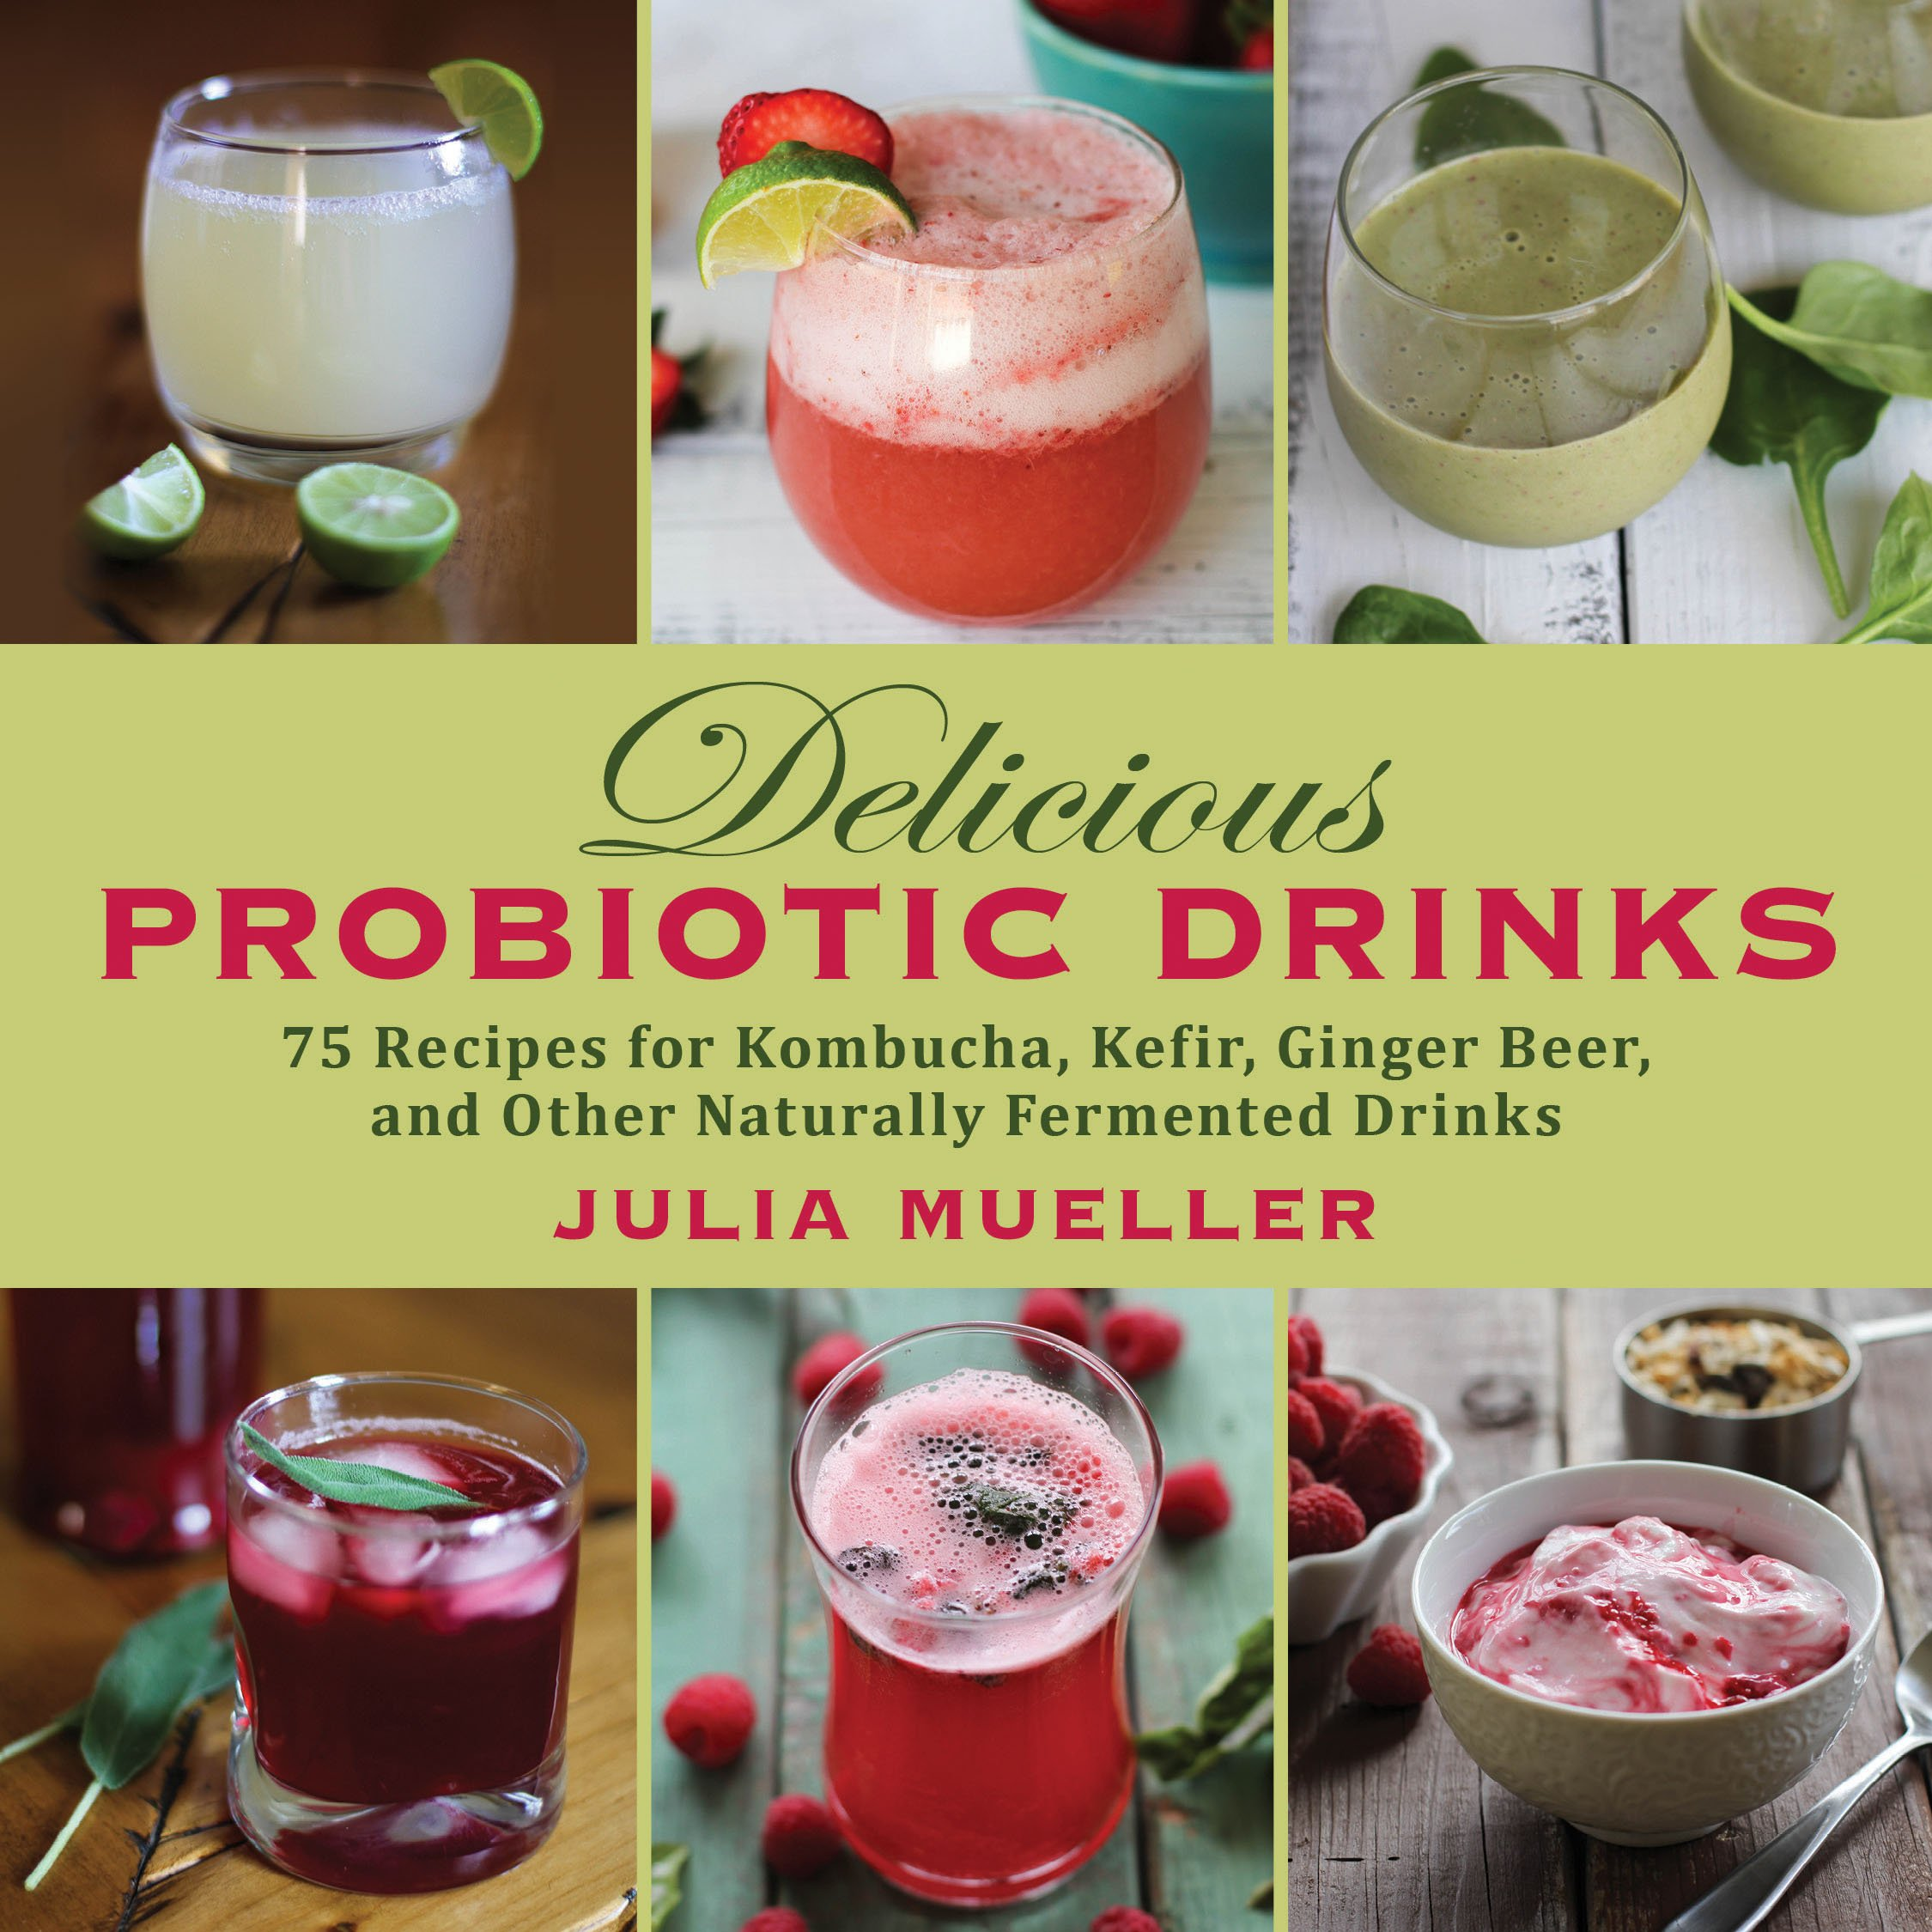 Delicious Probiotic Drinks Naturally Fermented product image